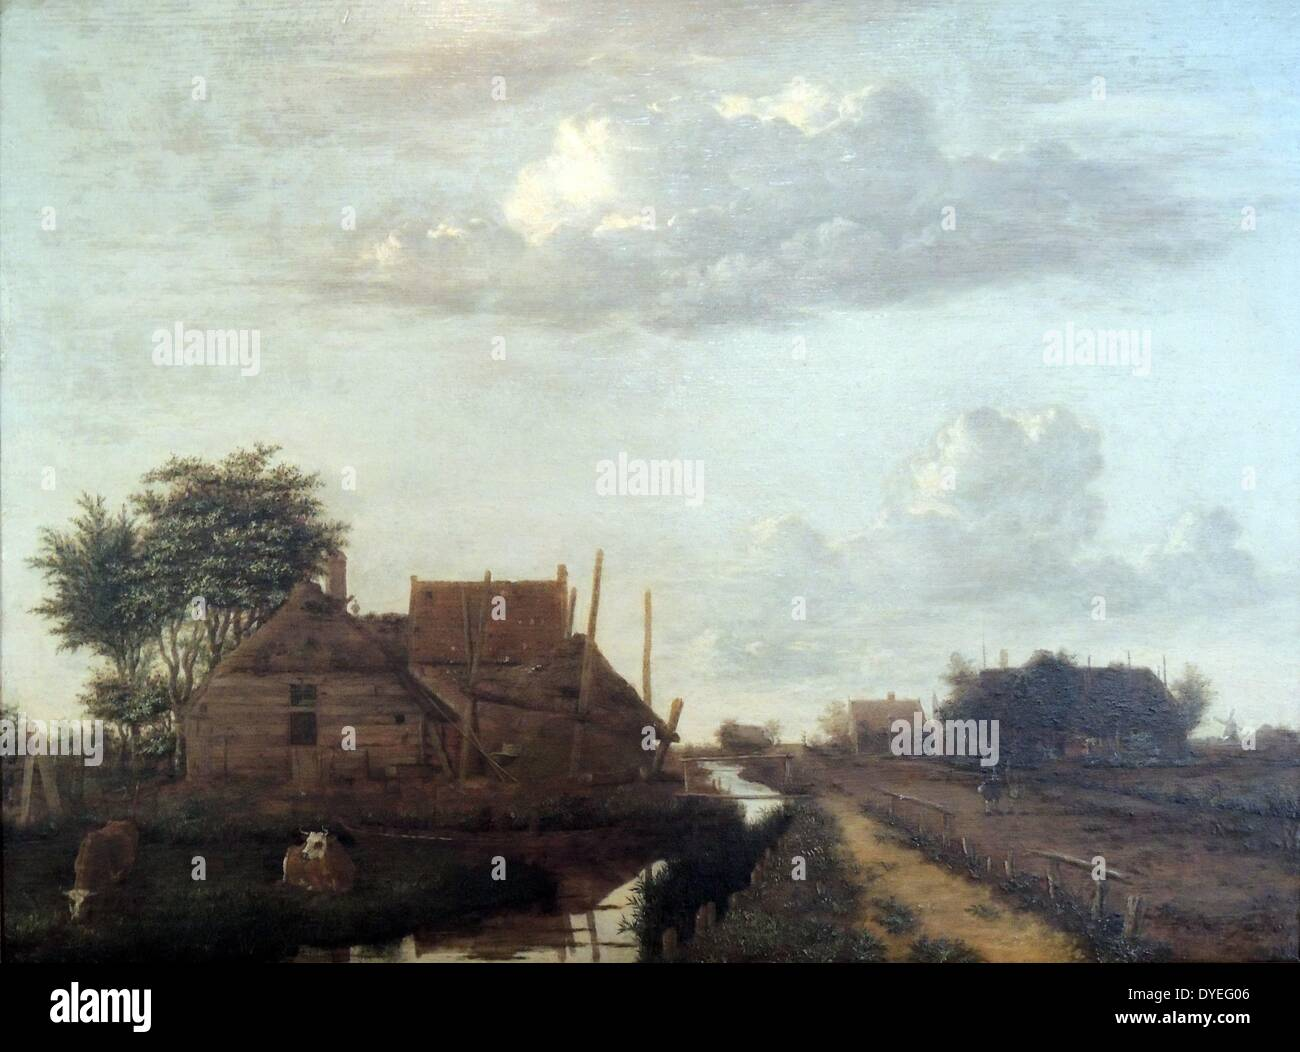 A Landscape with Cottages' by Emanuel Murant 1646 A.D. - Stock Image